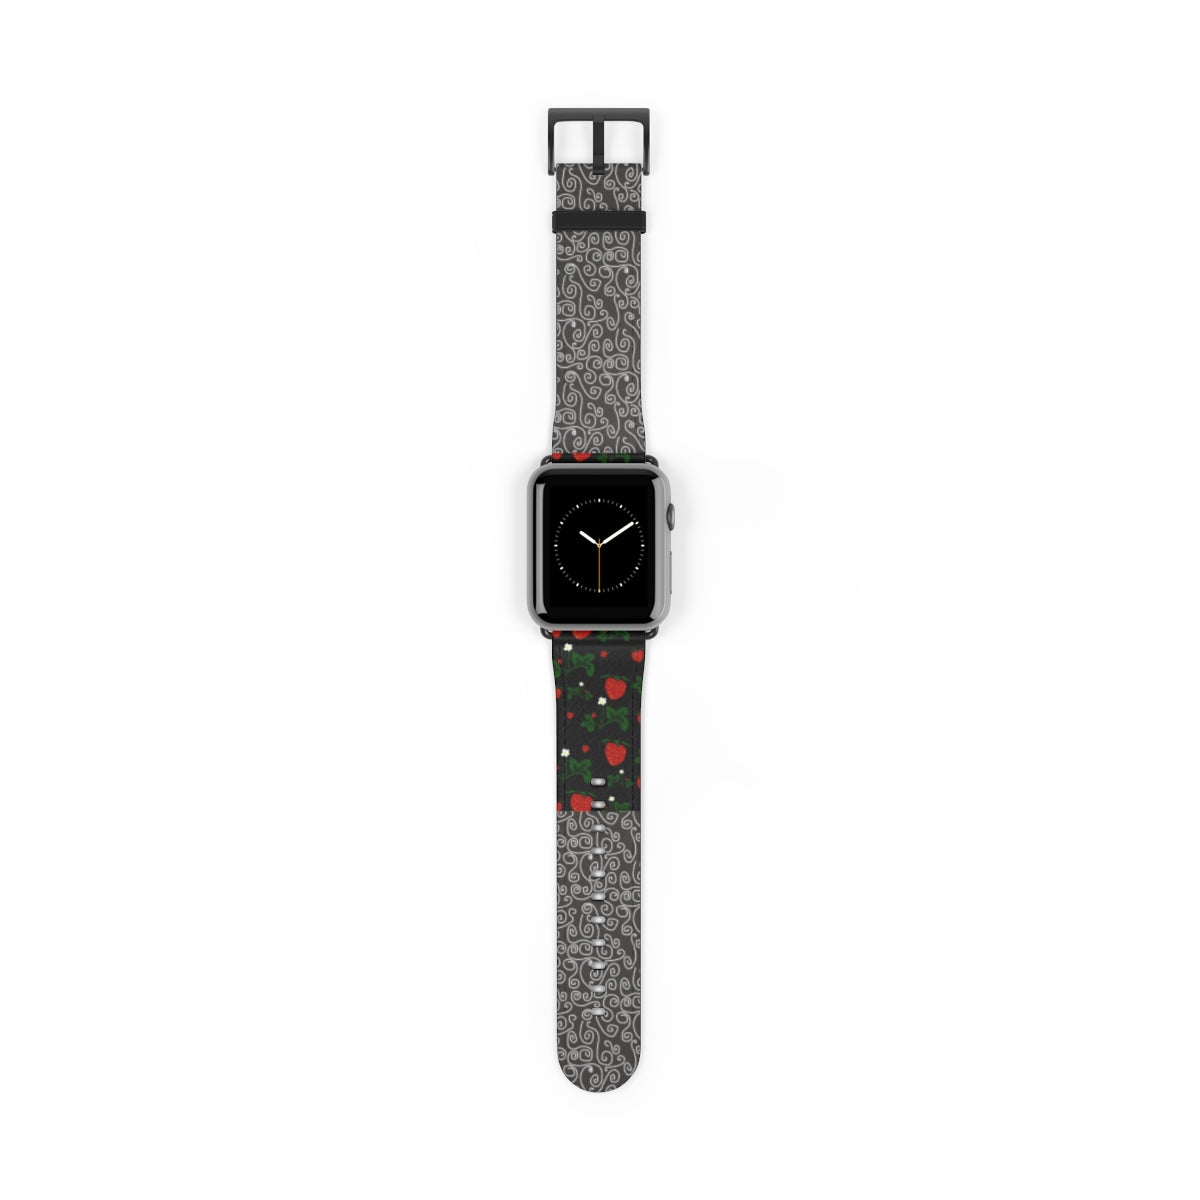 Strawberries and Gray and White Swirls Watch Band